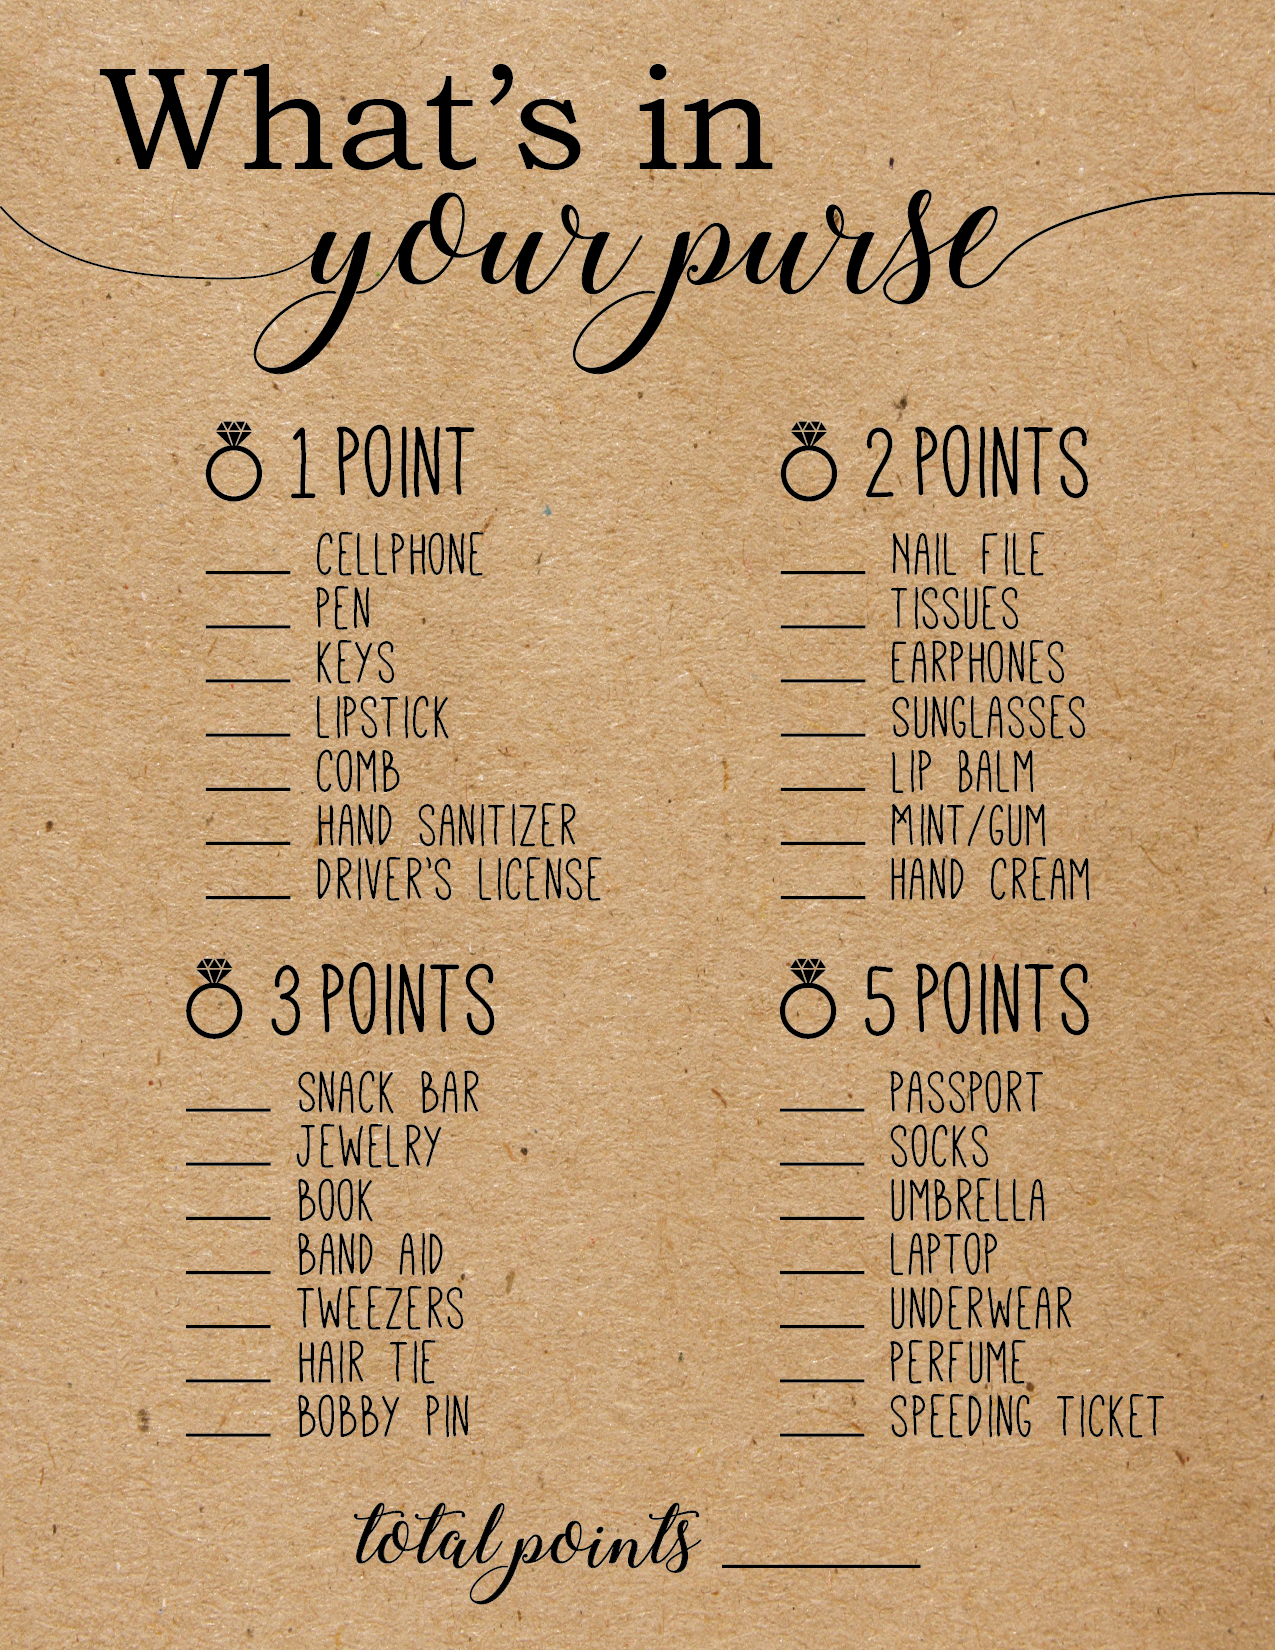 Astounding image with what's in your purse game printable